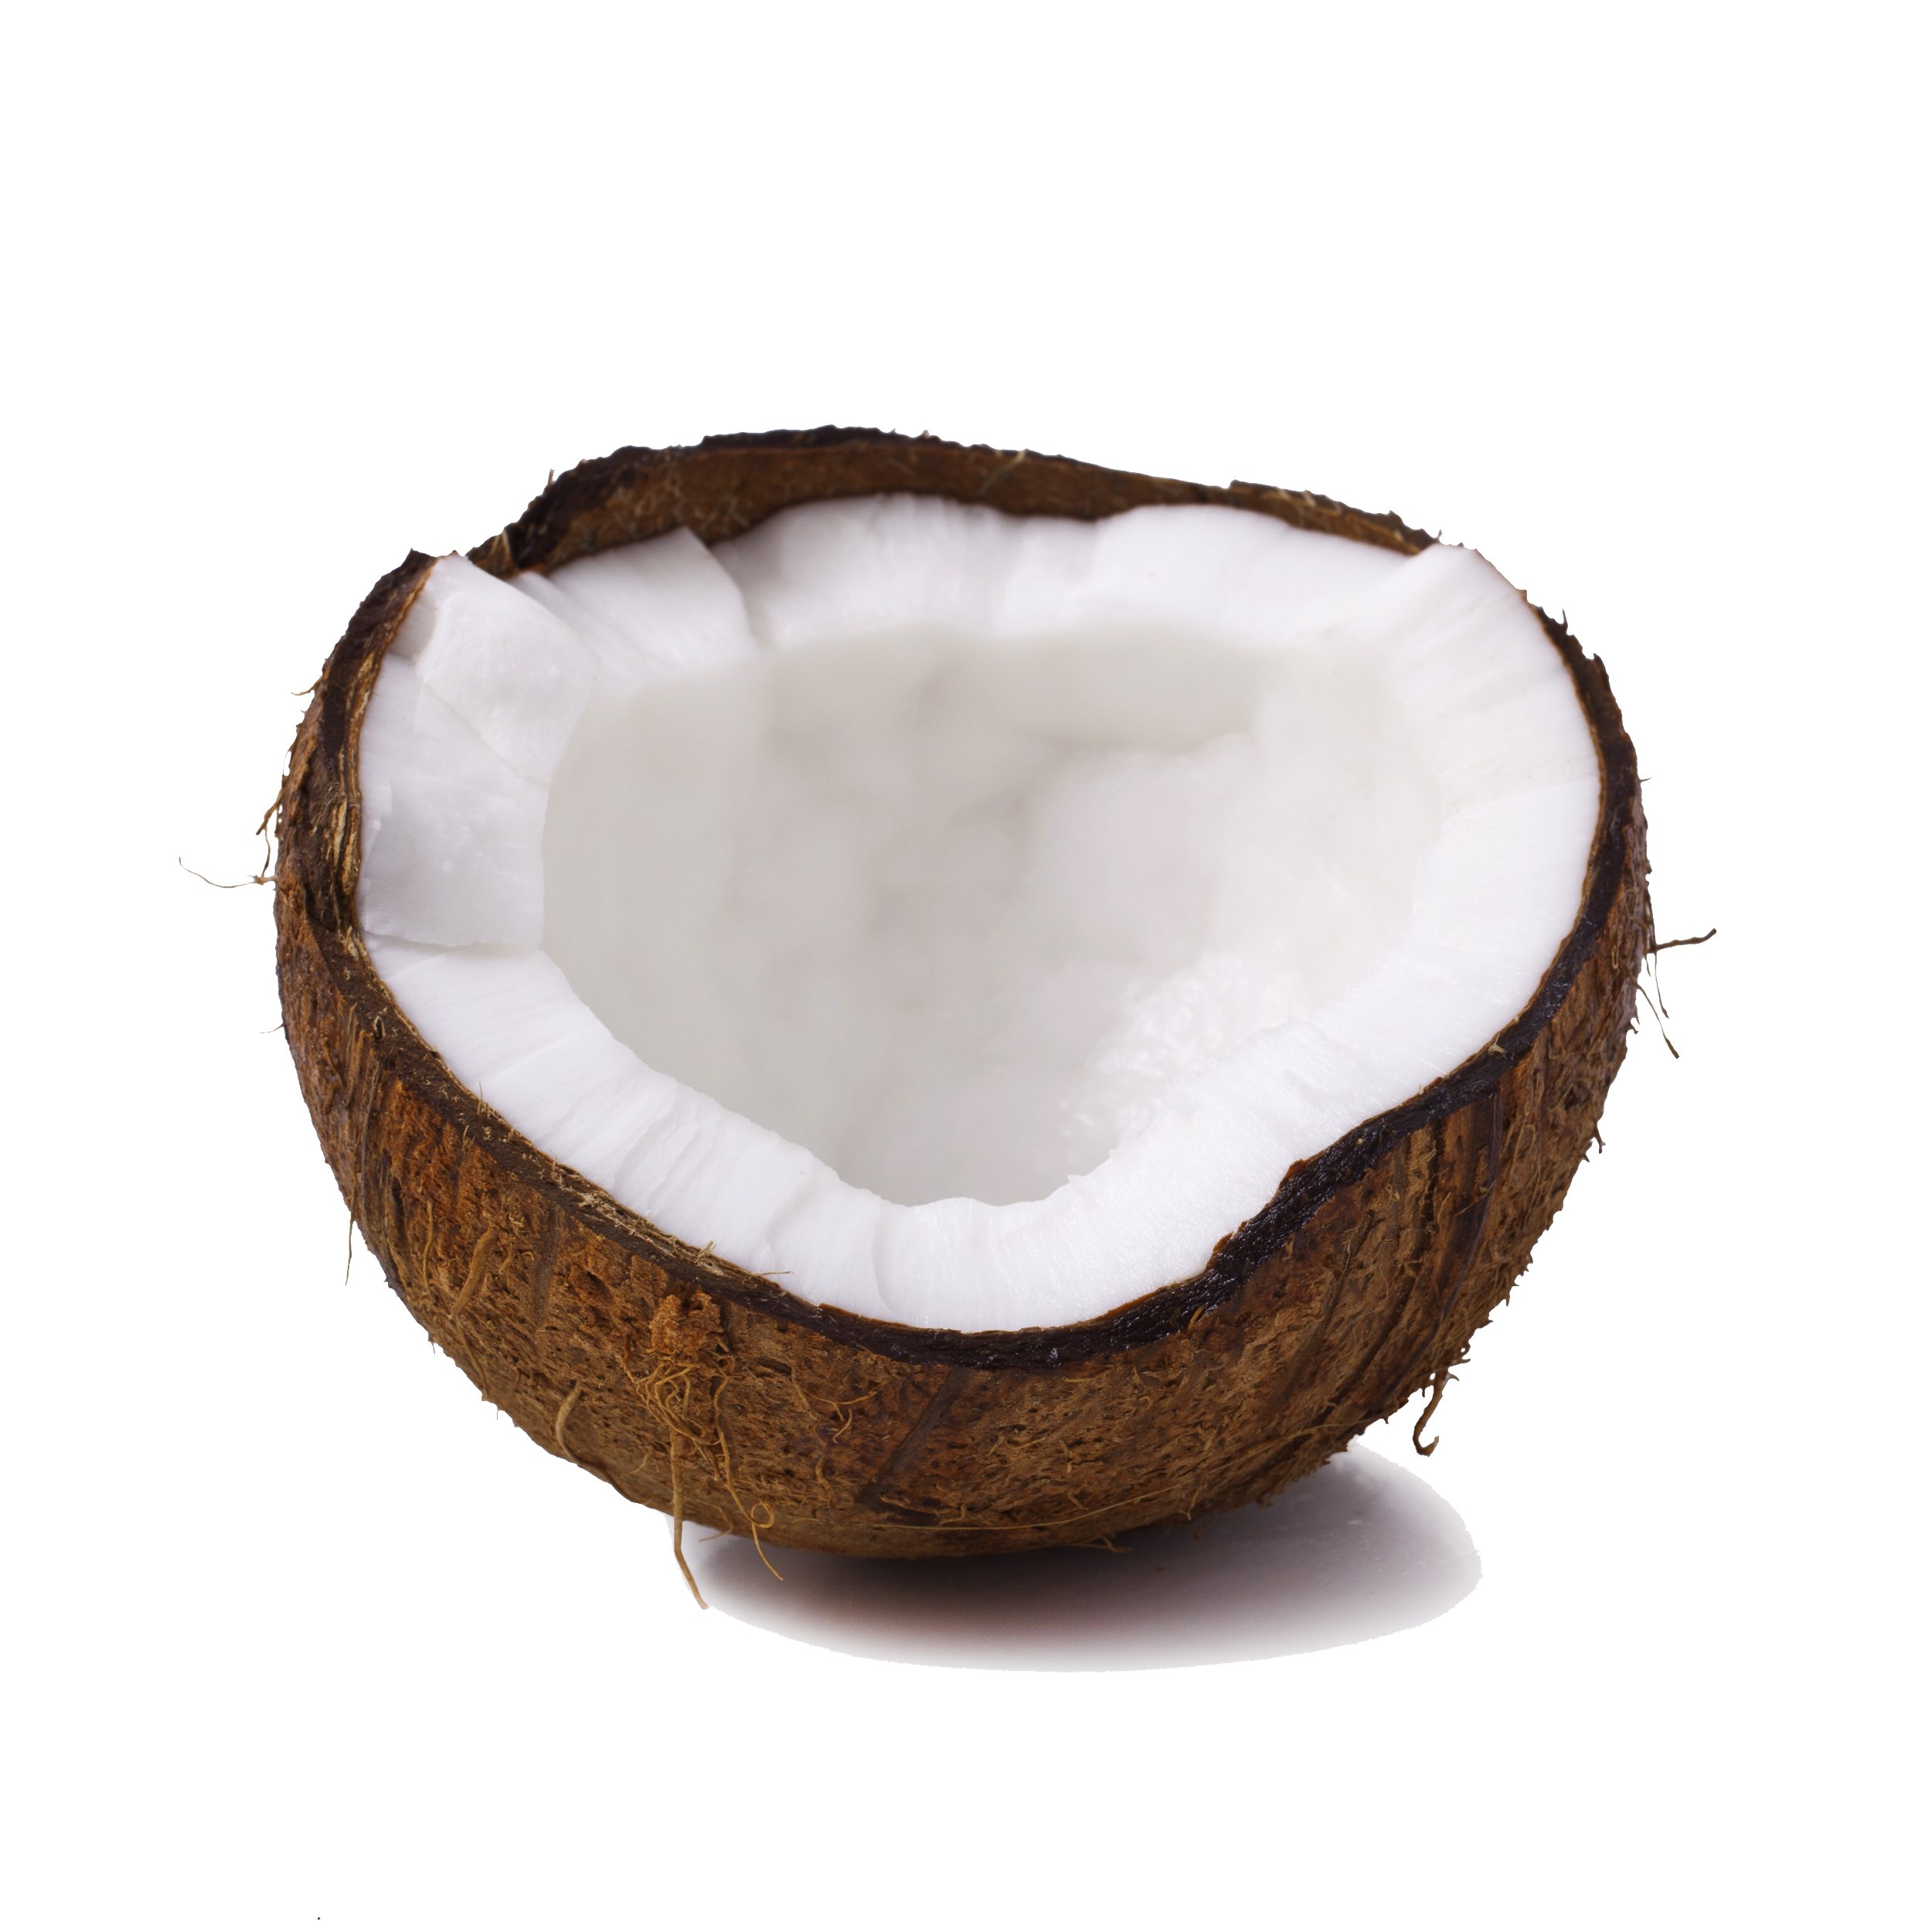 coconut transparent images only #8775